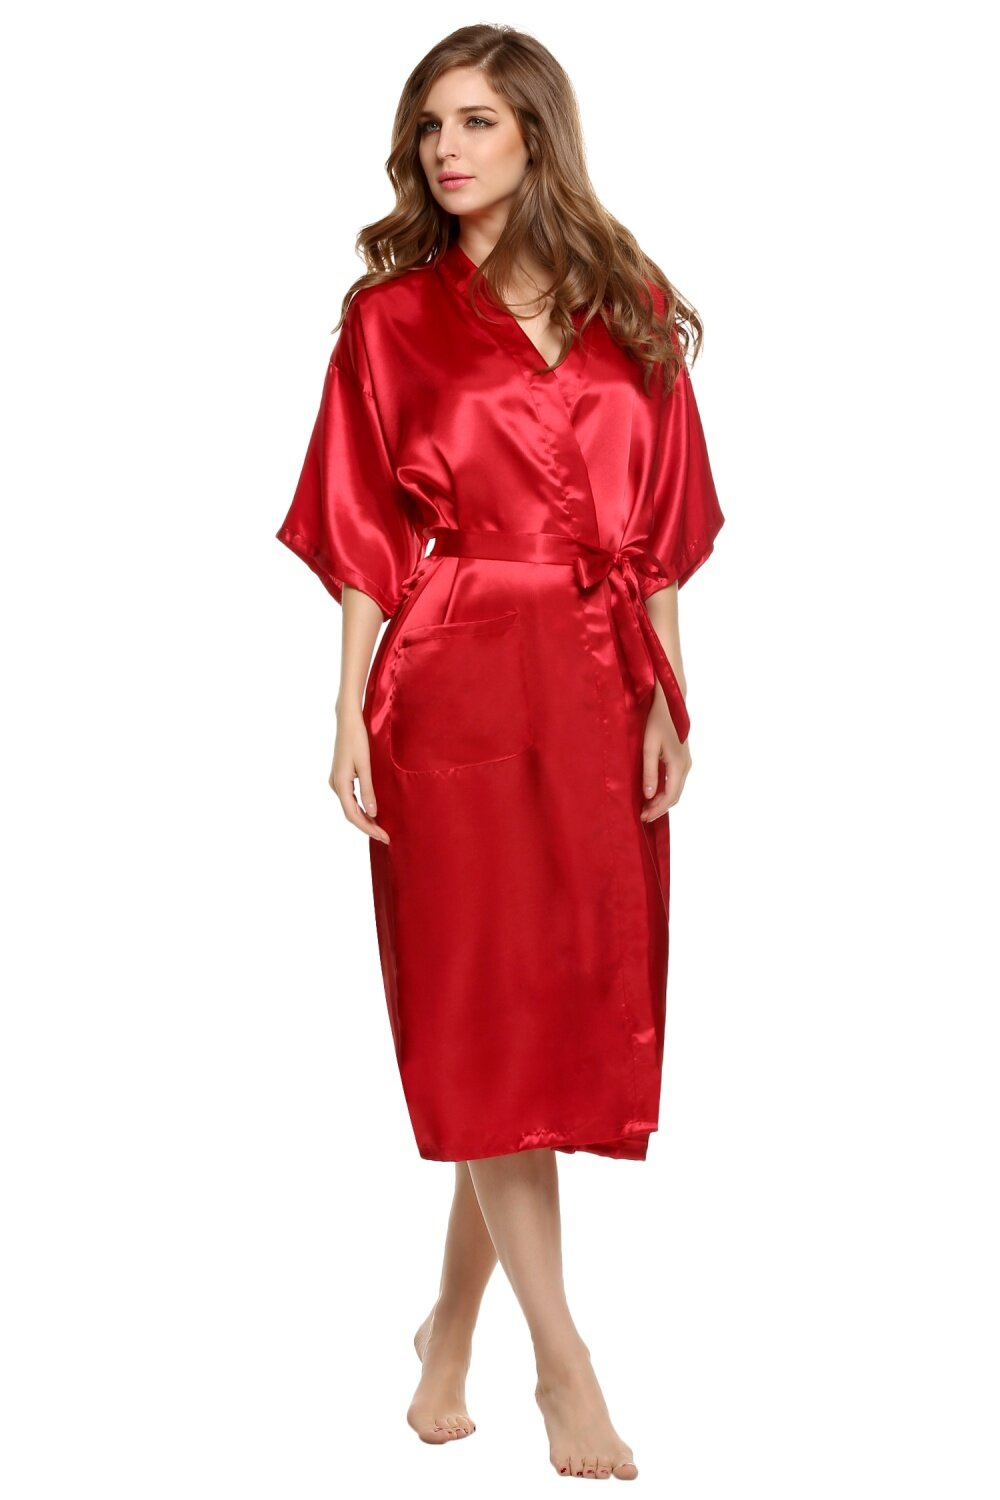 Find great deals on eBay for night robe. Shop with confidence.